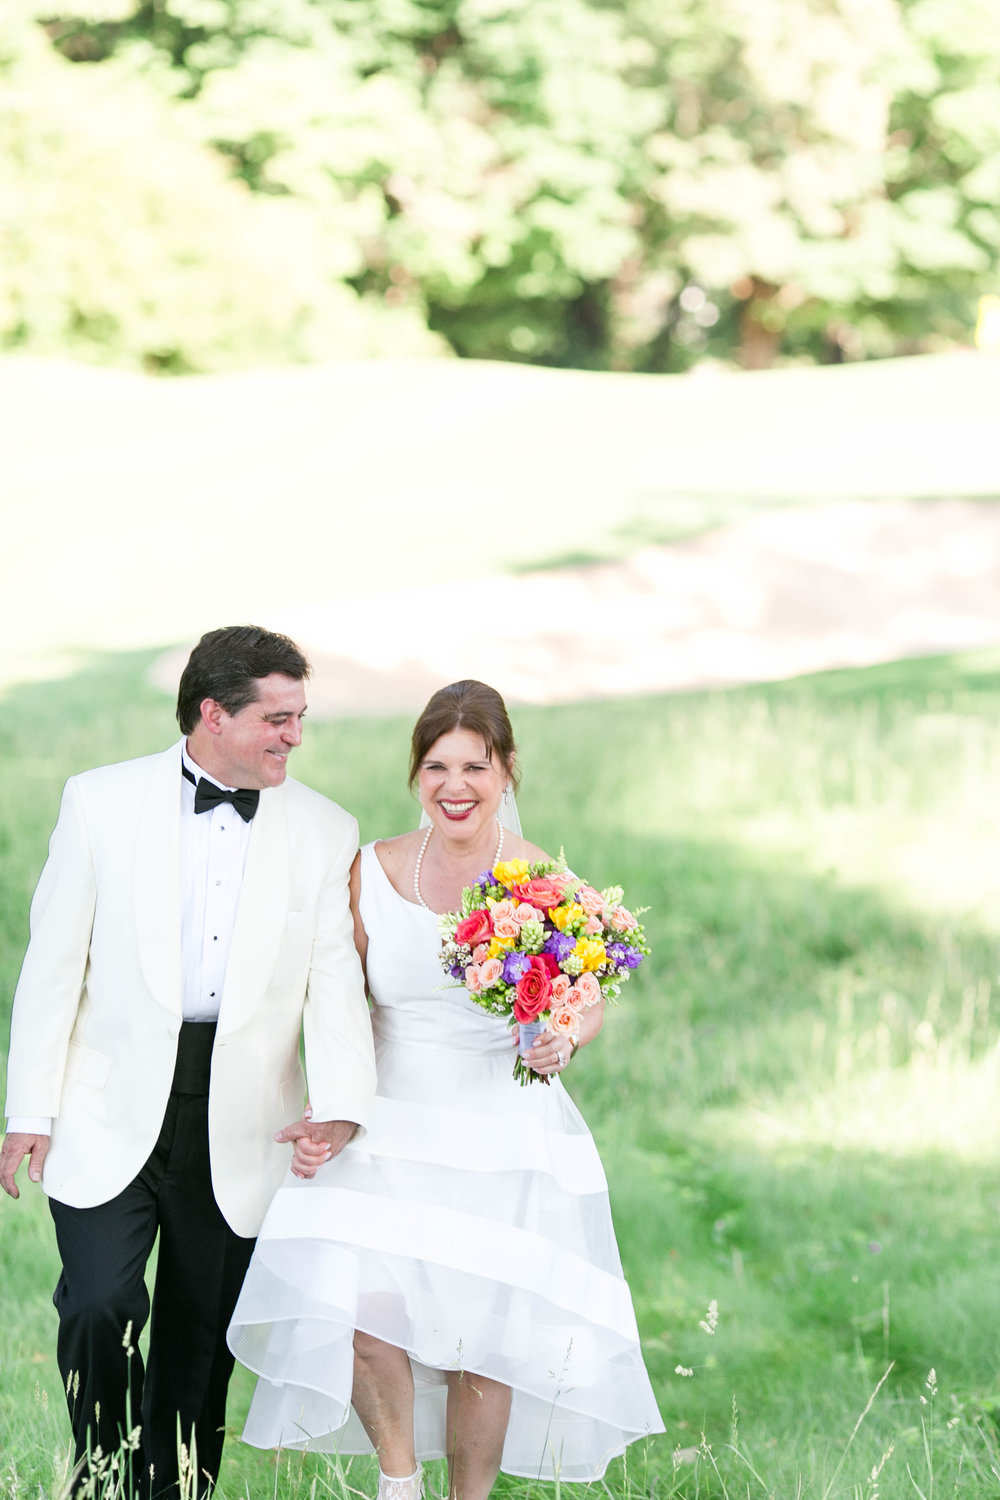 Johnson City Country Club wedding, East Tennessee wedding venue, Tri Cities TN wedding photographer, bride and groom portraits